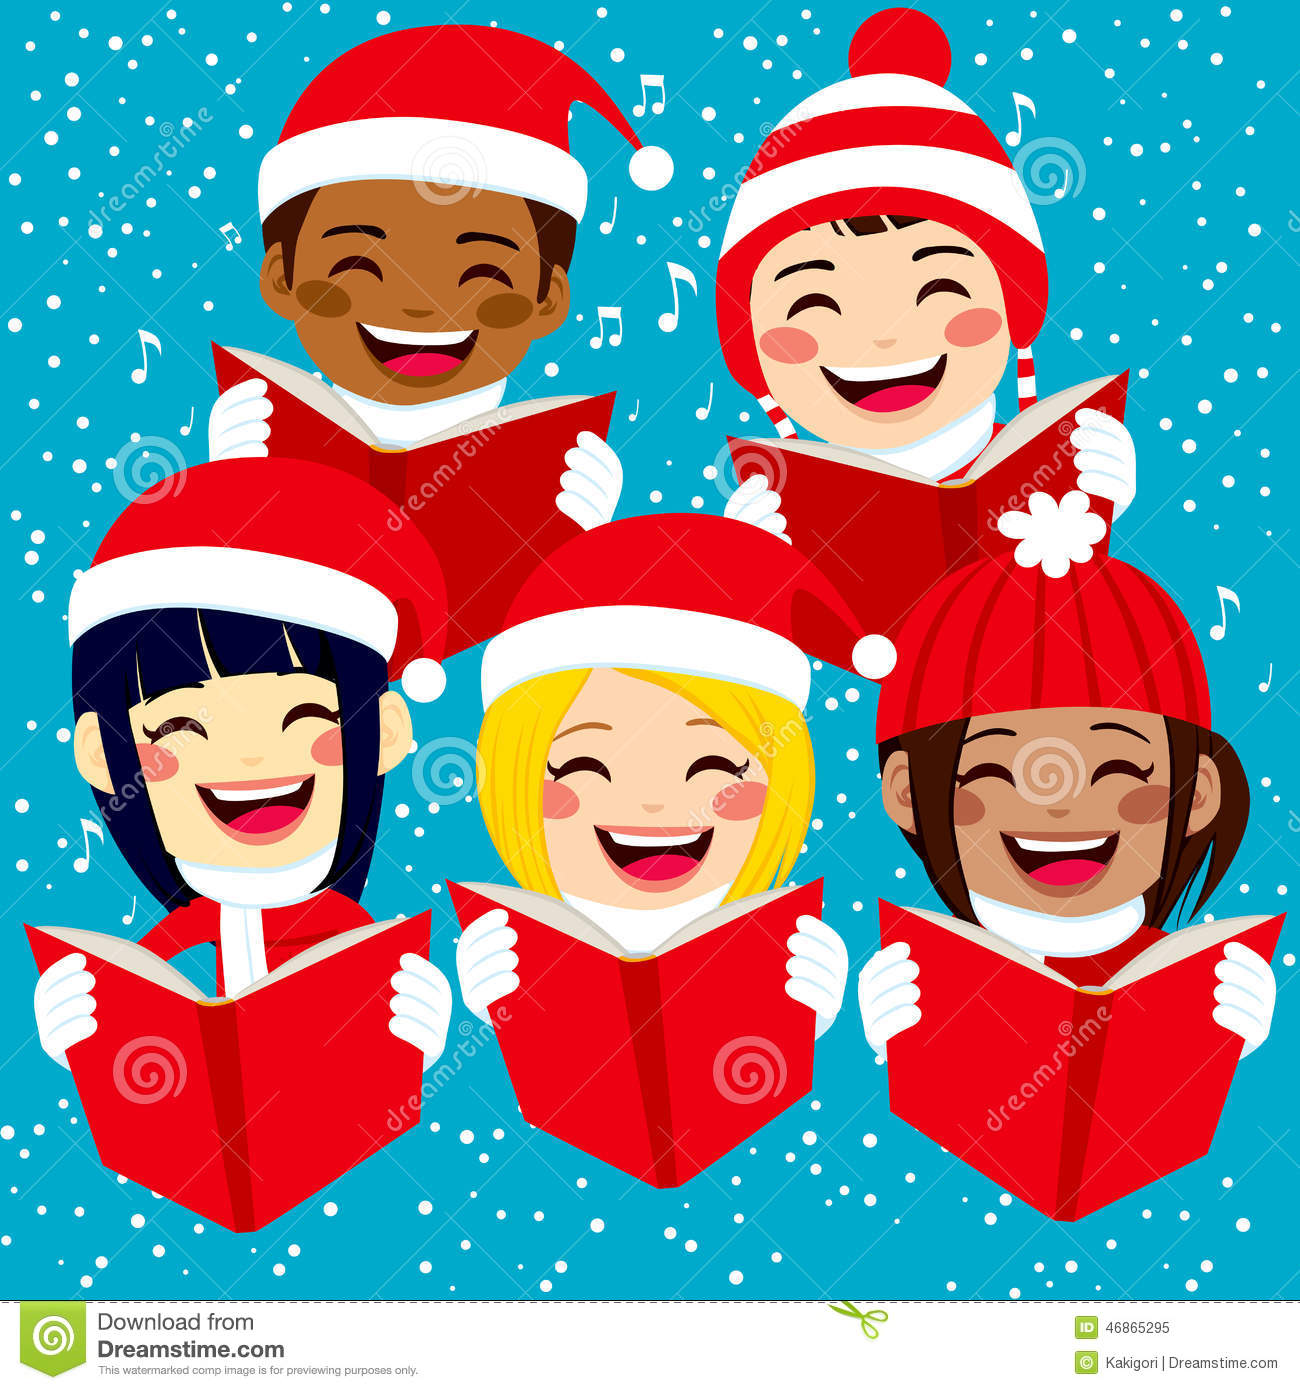 Five cute happy children singing christmas carols with snowflakes and